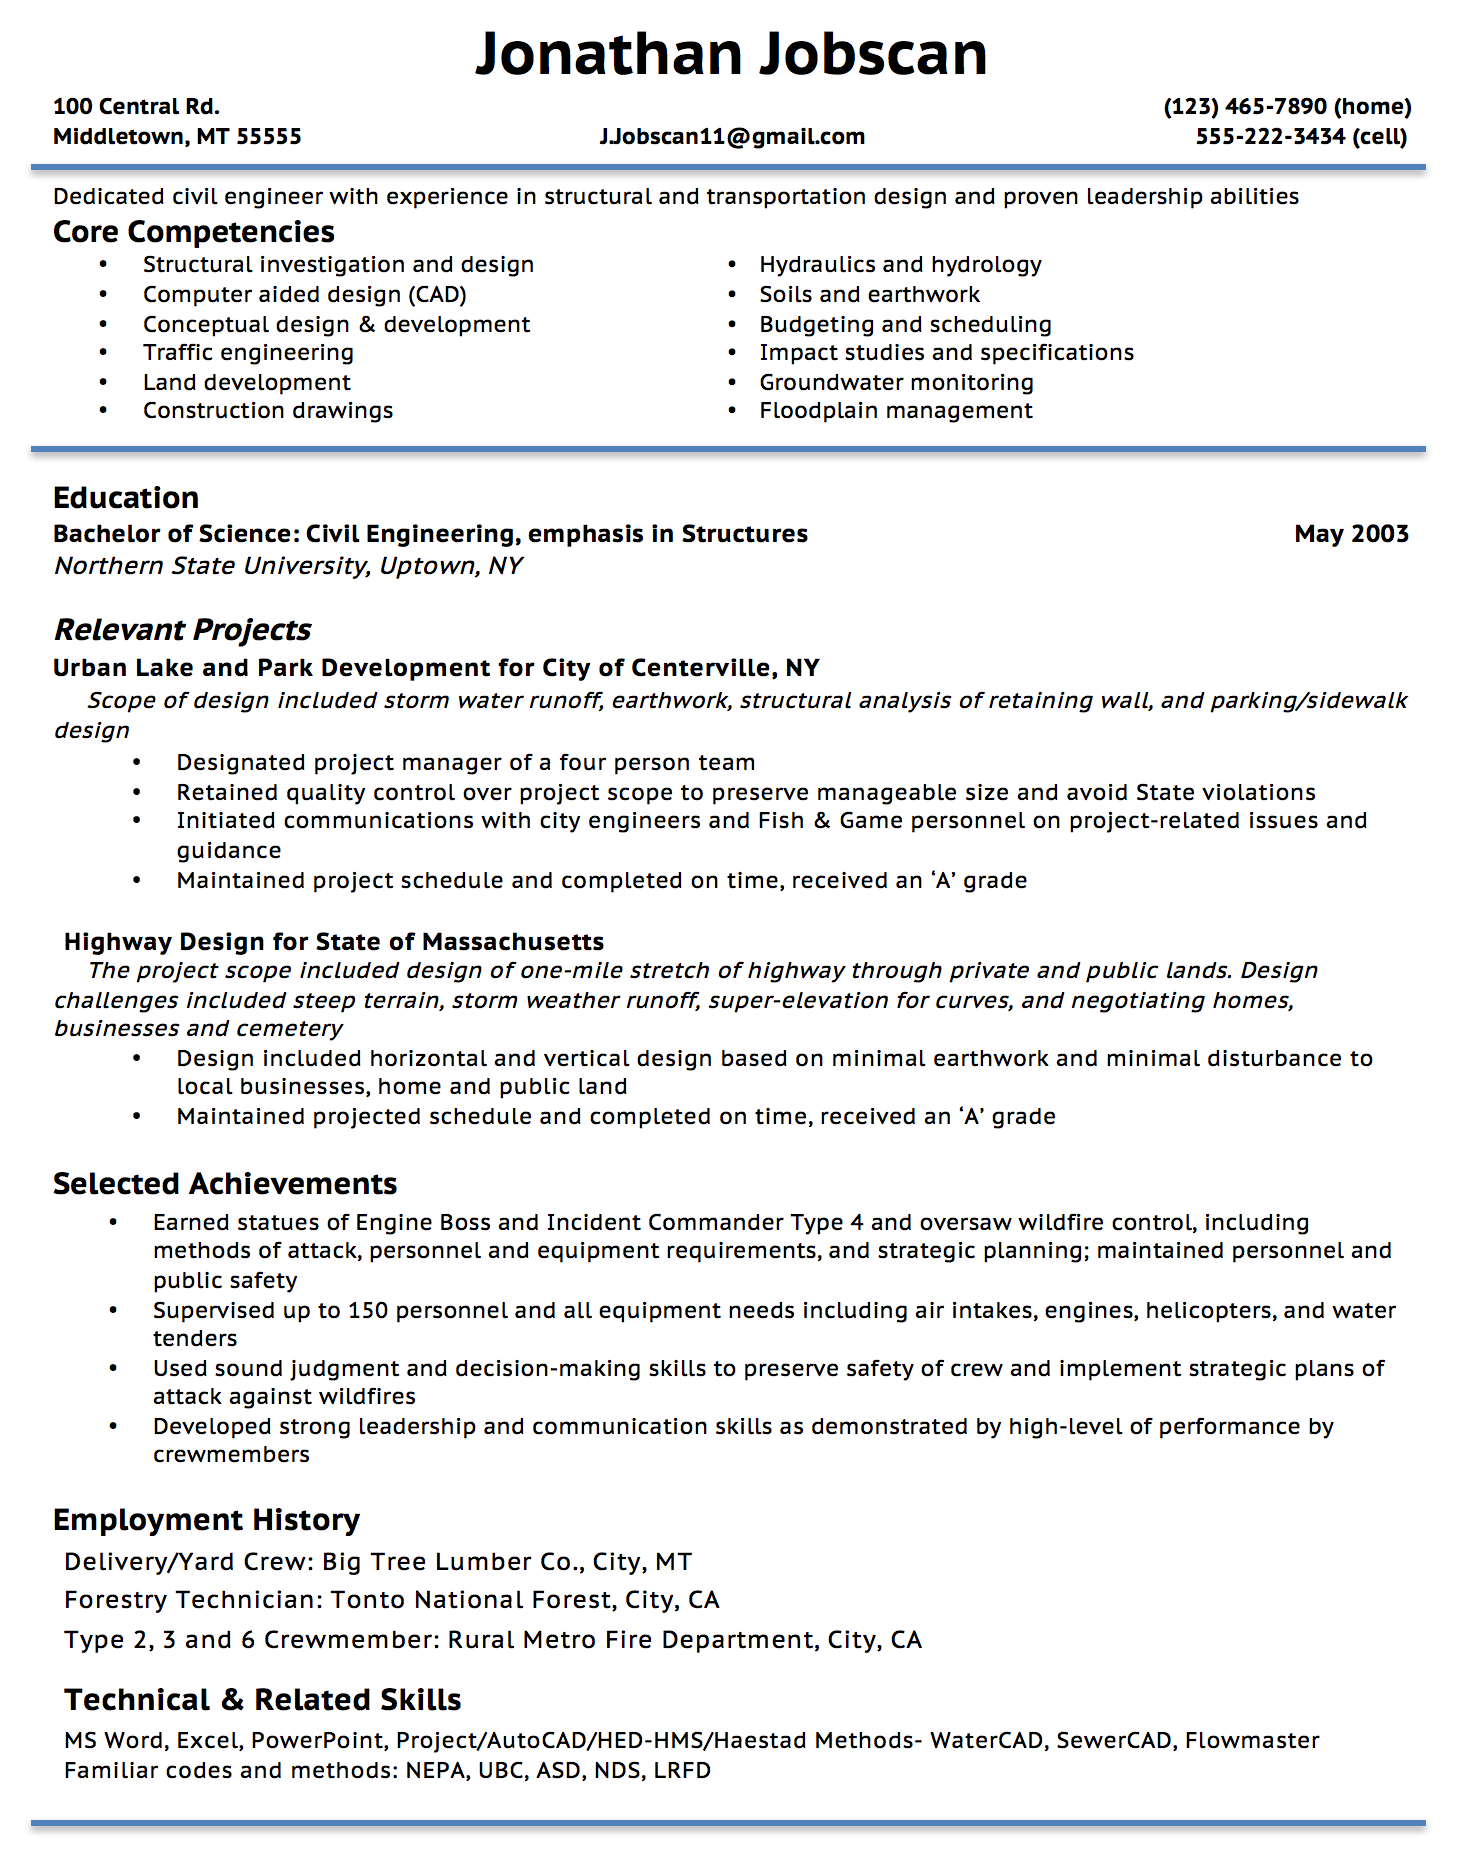 Picnictoimpeachus  Nice Resume Writing Guide  Jobscan With Great Example Of A Functional Resume Format With Agreeable Resume Bulder Also Readwritethink Resume Generator In Addition Resume Header Examples And Resume Layout Samples As Well As Resume Checklist Additionally Direct Support Professional Resume From Jobscanco With Picnictoimpeachus  Great Resume Writing Guide  Jobscan With Agreeable Example Of A Functional Resume Format And Nice Resume Bulder Also Readwritethink Resume Generator In Addition Resume Header Examples From Jobscanco